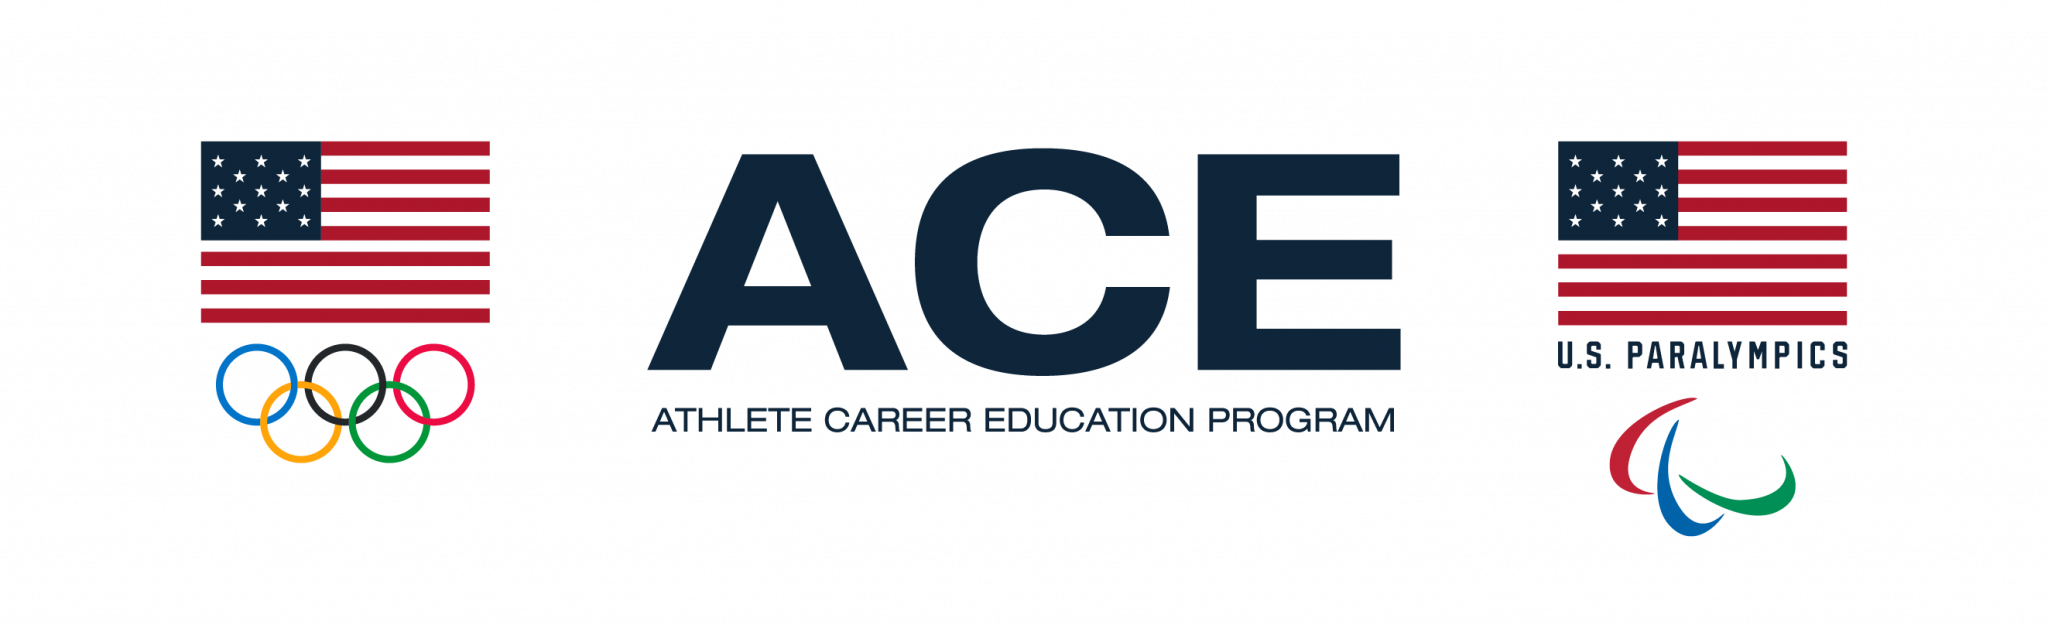 The Athlete Career and Education programme aims to help athletes explore career and education options ©USOC